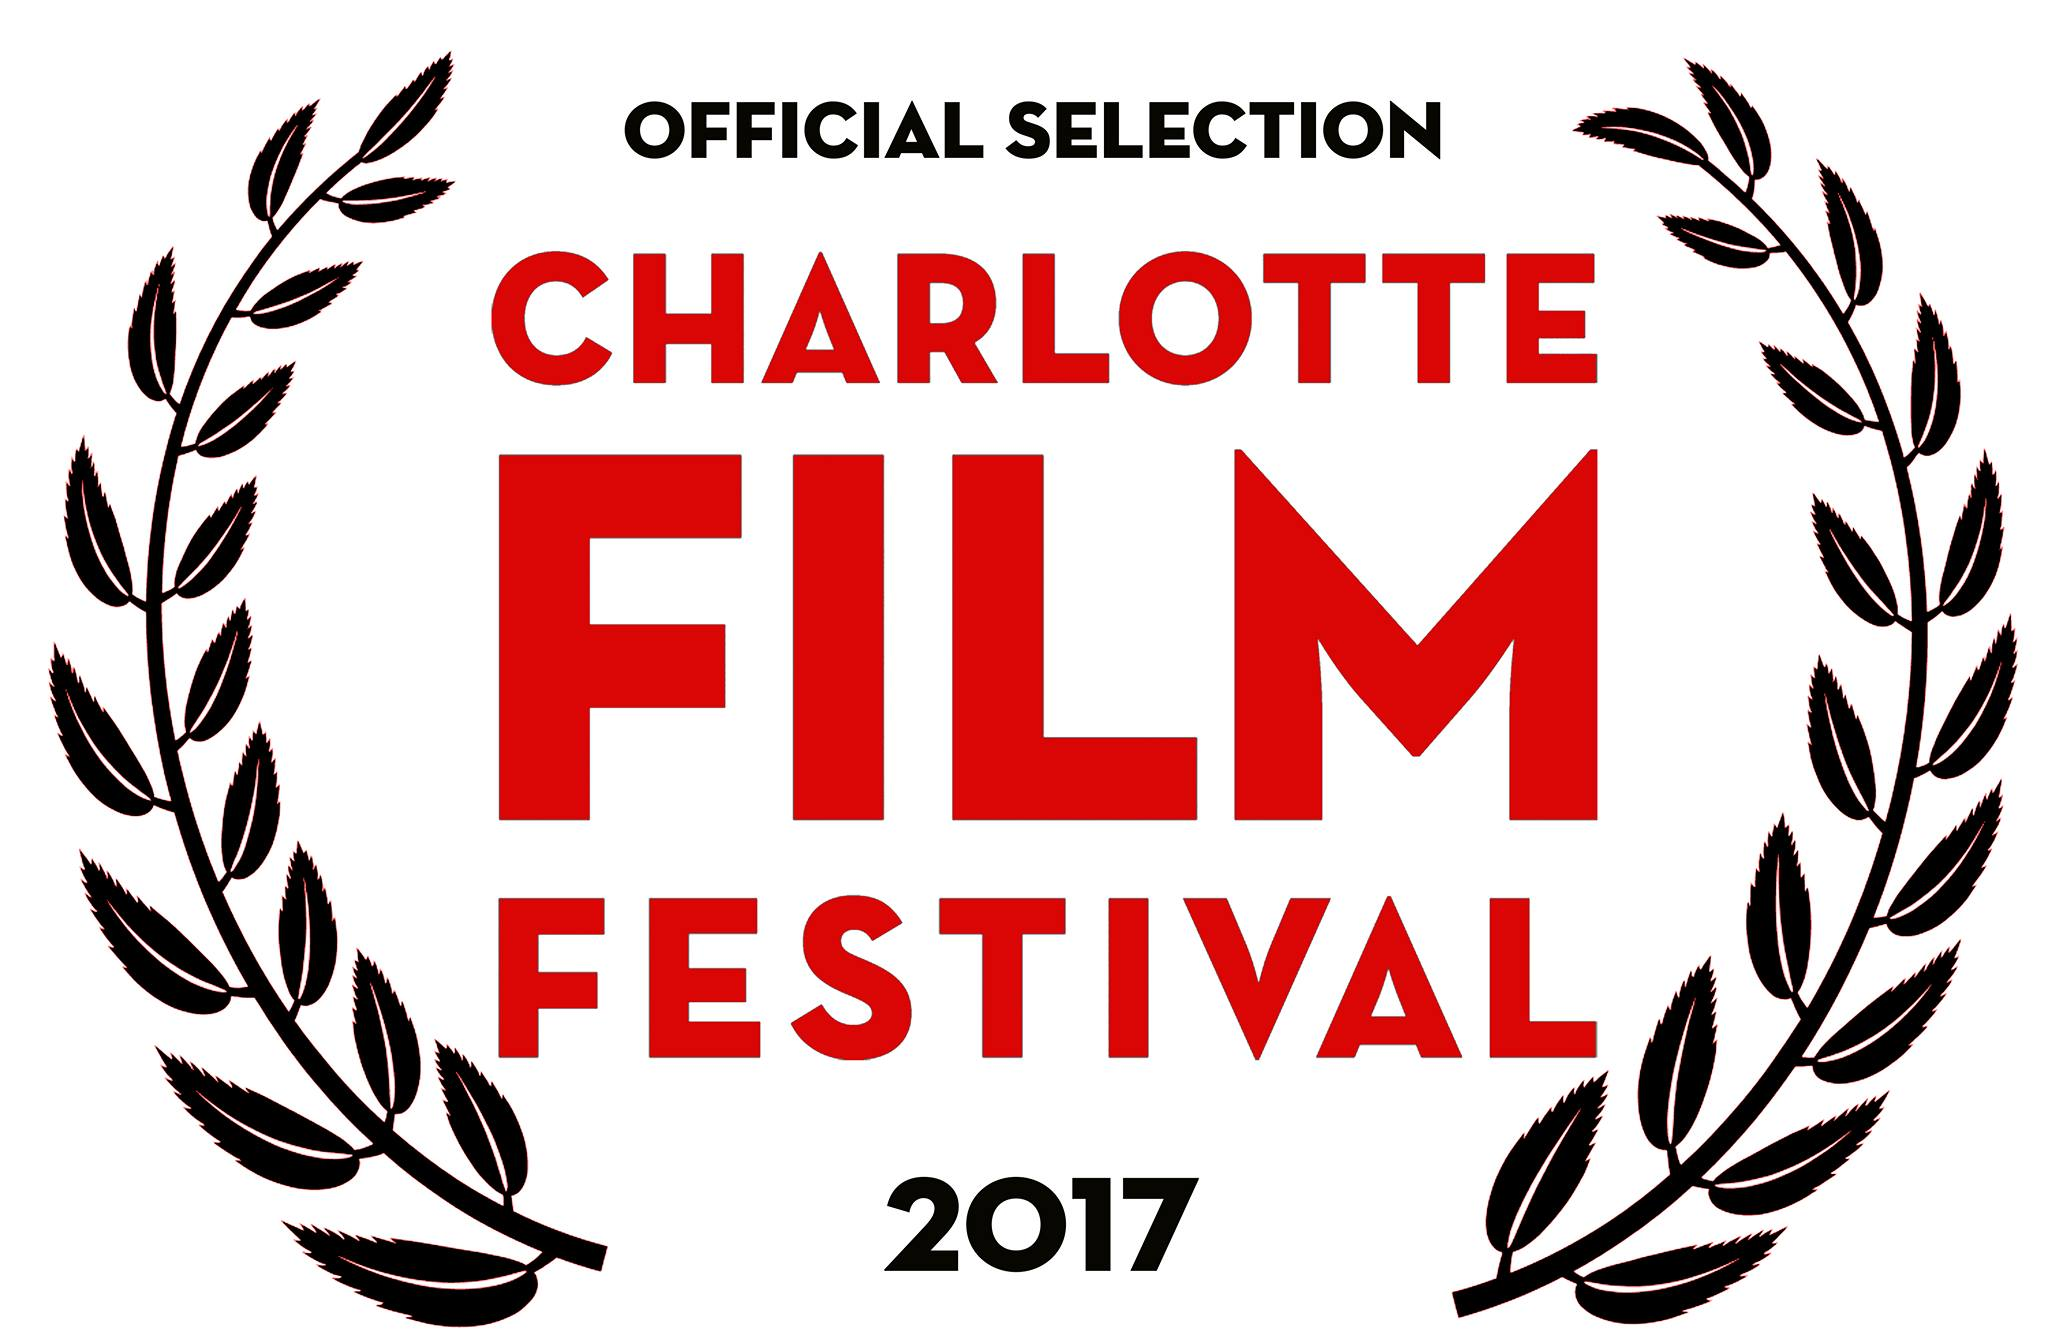 Charlotte Film Festival - We are thrilled to have Baggageofficially featured in the upcoming Charlotte Film Festivalat the end of September! Check out their page for more updates and information.